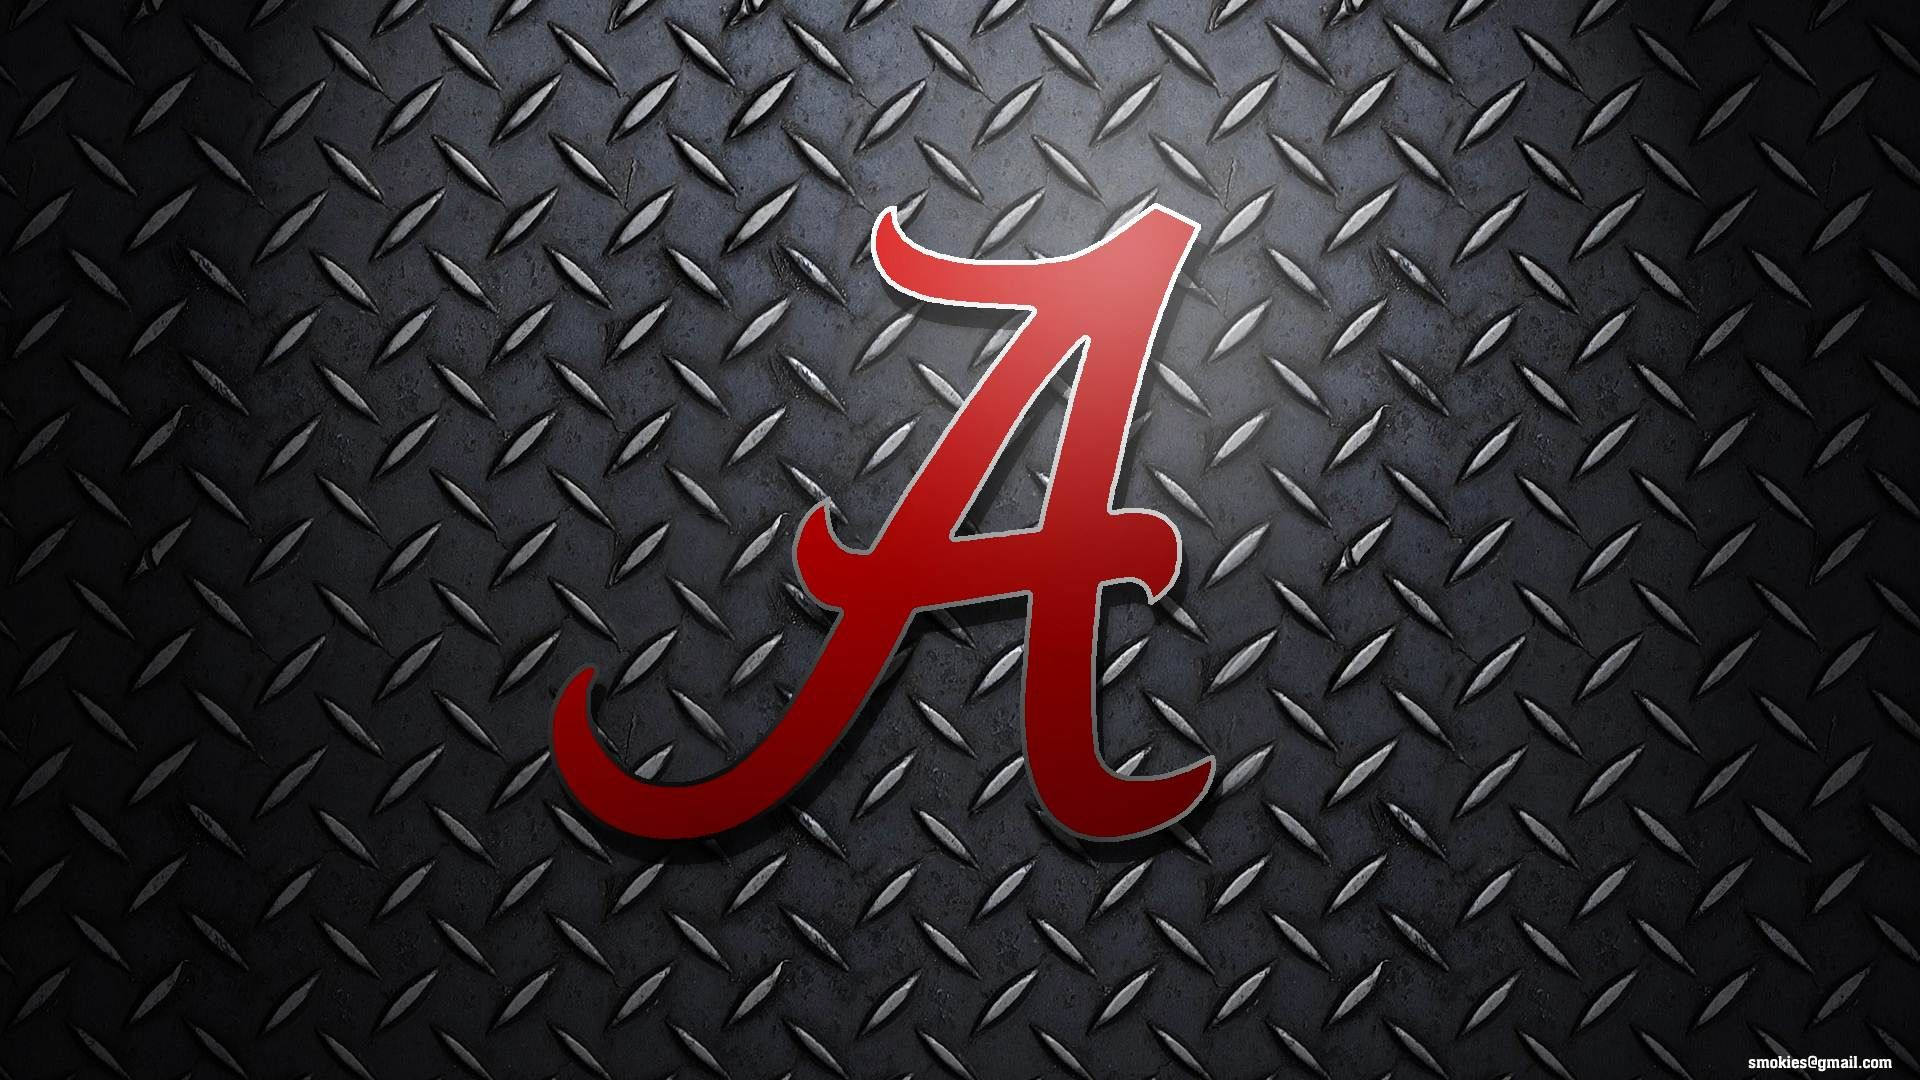 Alabama Crimson Tide Logo Wallpapers Wallpaper Cave Alabama Crimson Tide Logo Alabama Wallpaper Alabama Football Pictures